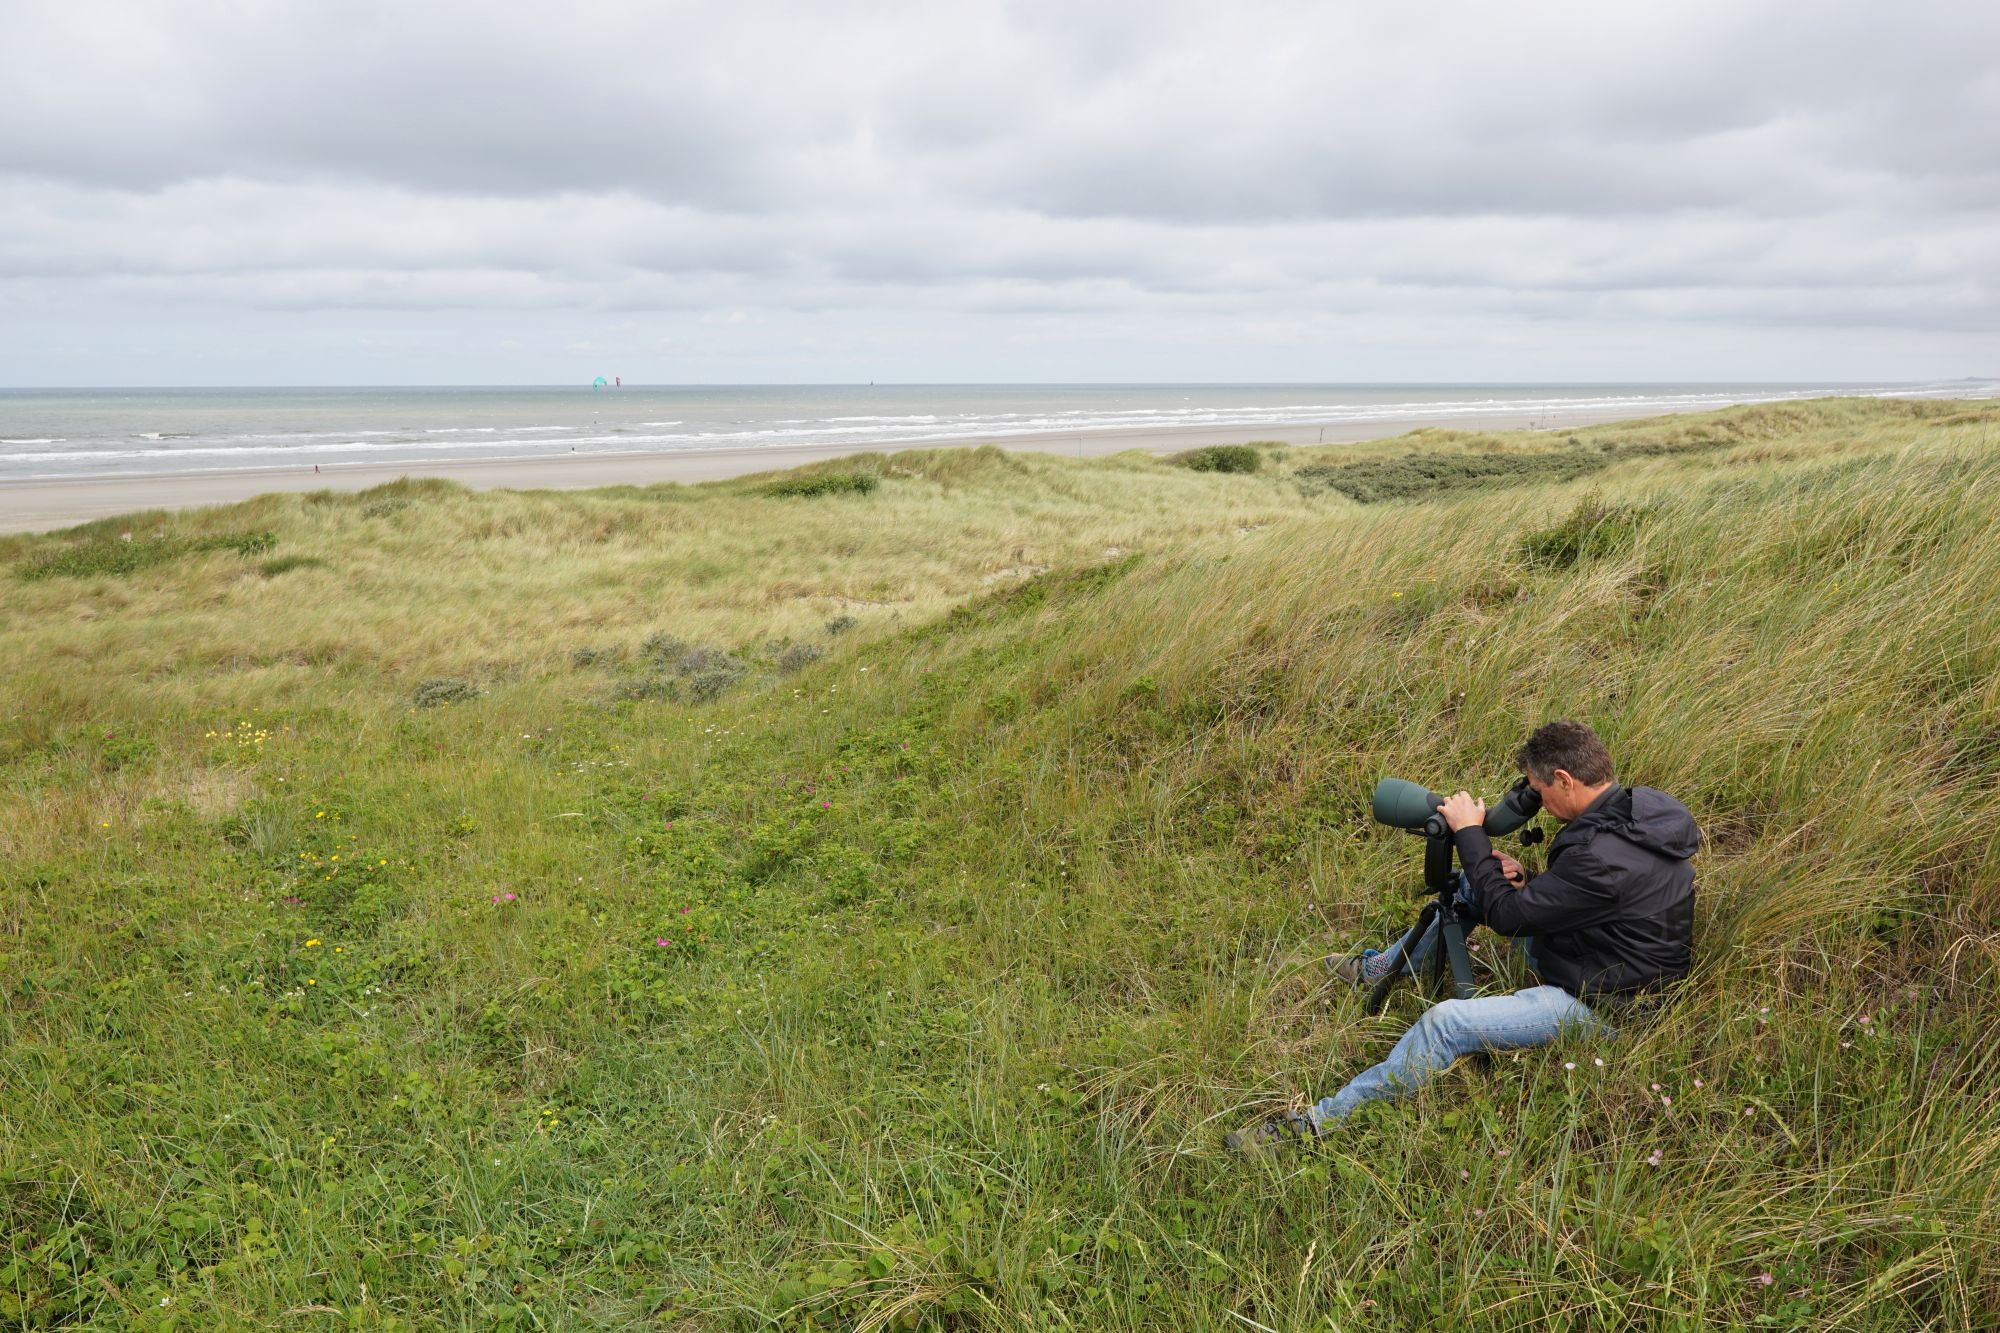 A joint adventure: Mark and Nils seawatching with the SWAROVSKI OPTIK 115-mm objective module - Nils van Duivendijk went birding on the Dutch coastline with the BTX 115-mm objective module.